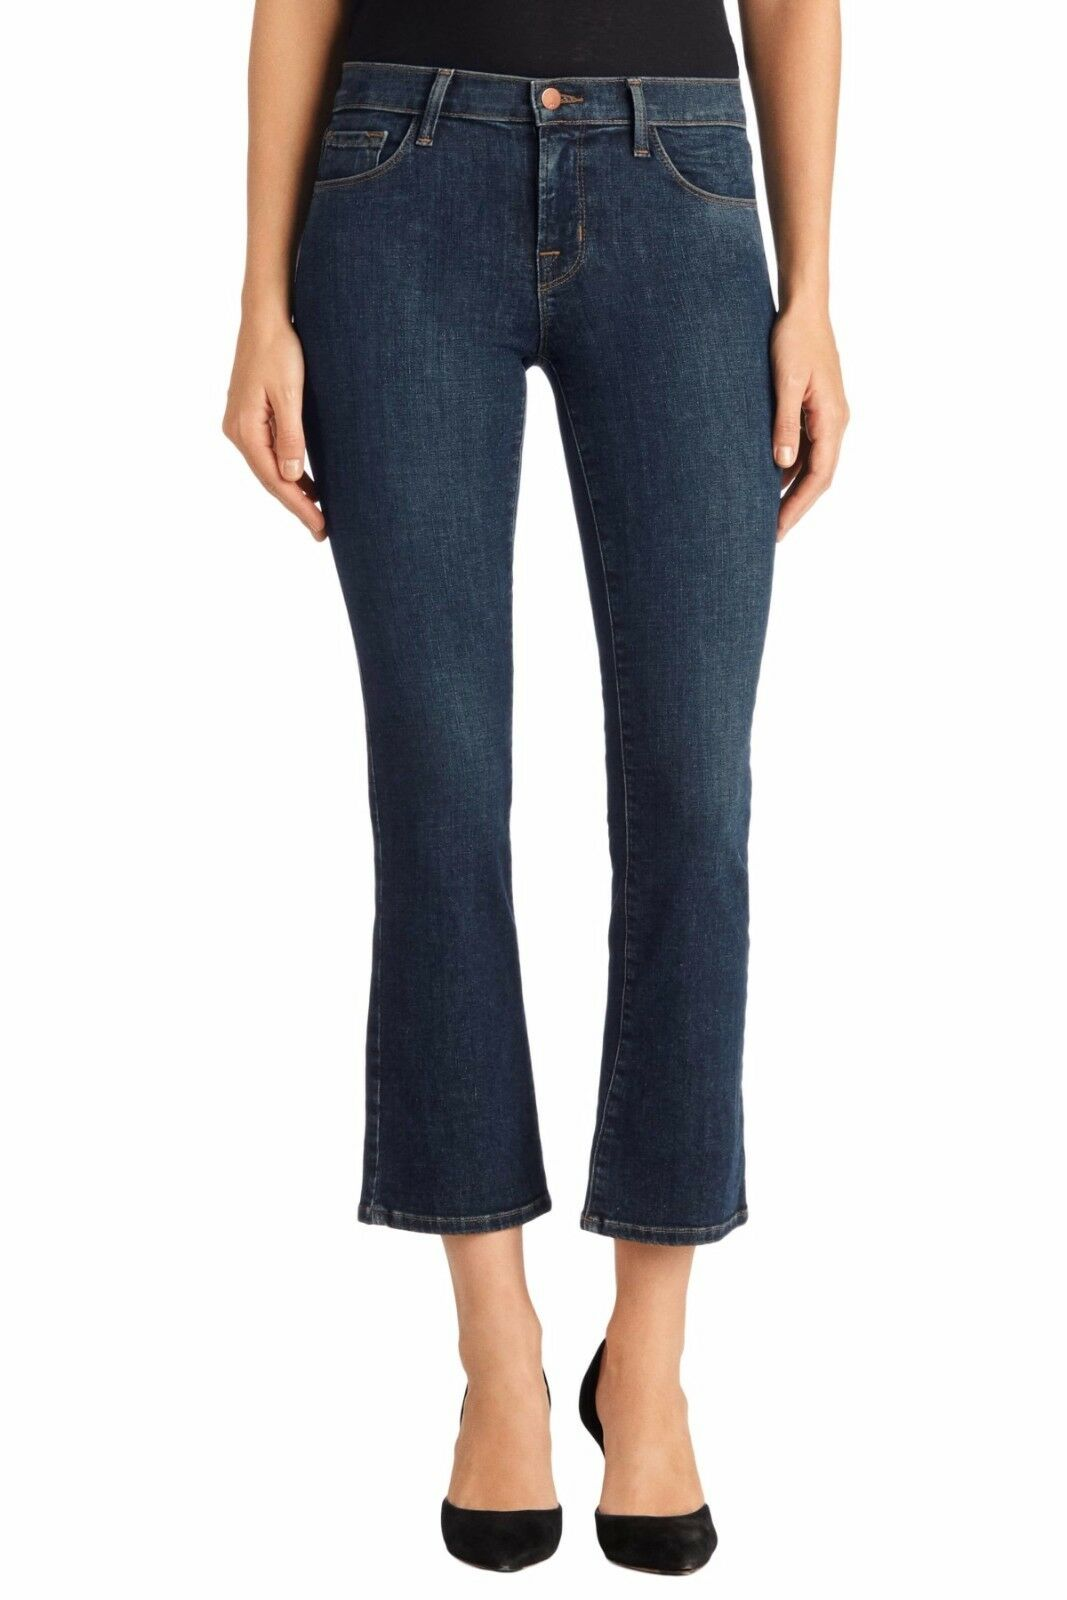 NWT J Brand Selena Mid Rise Crop Bootcut Lonesome Size 26,27,28